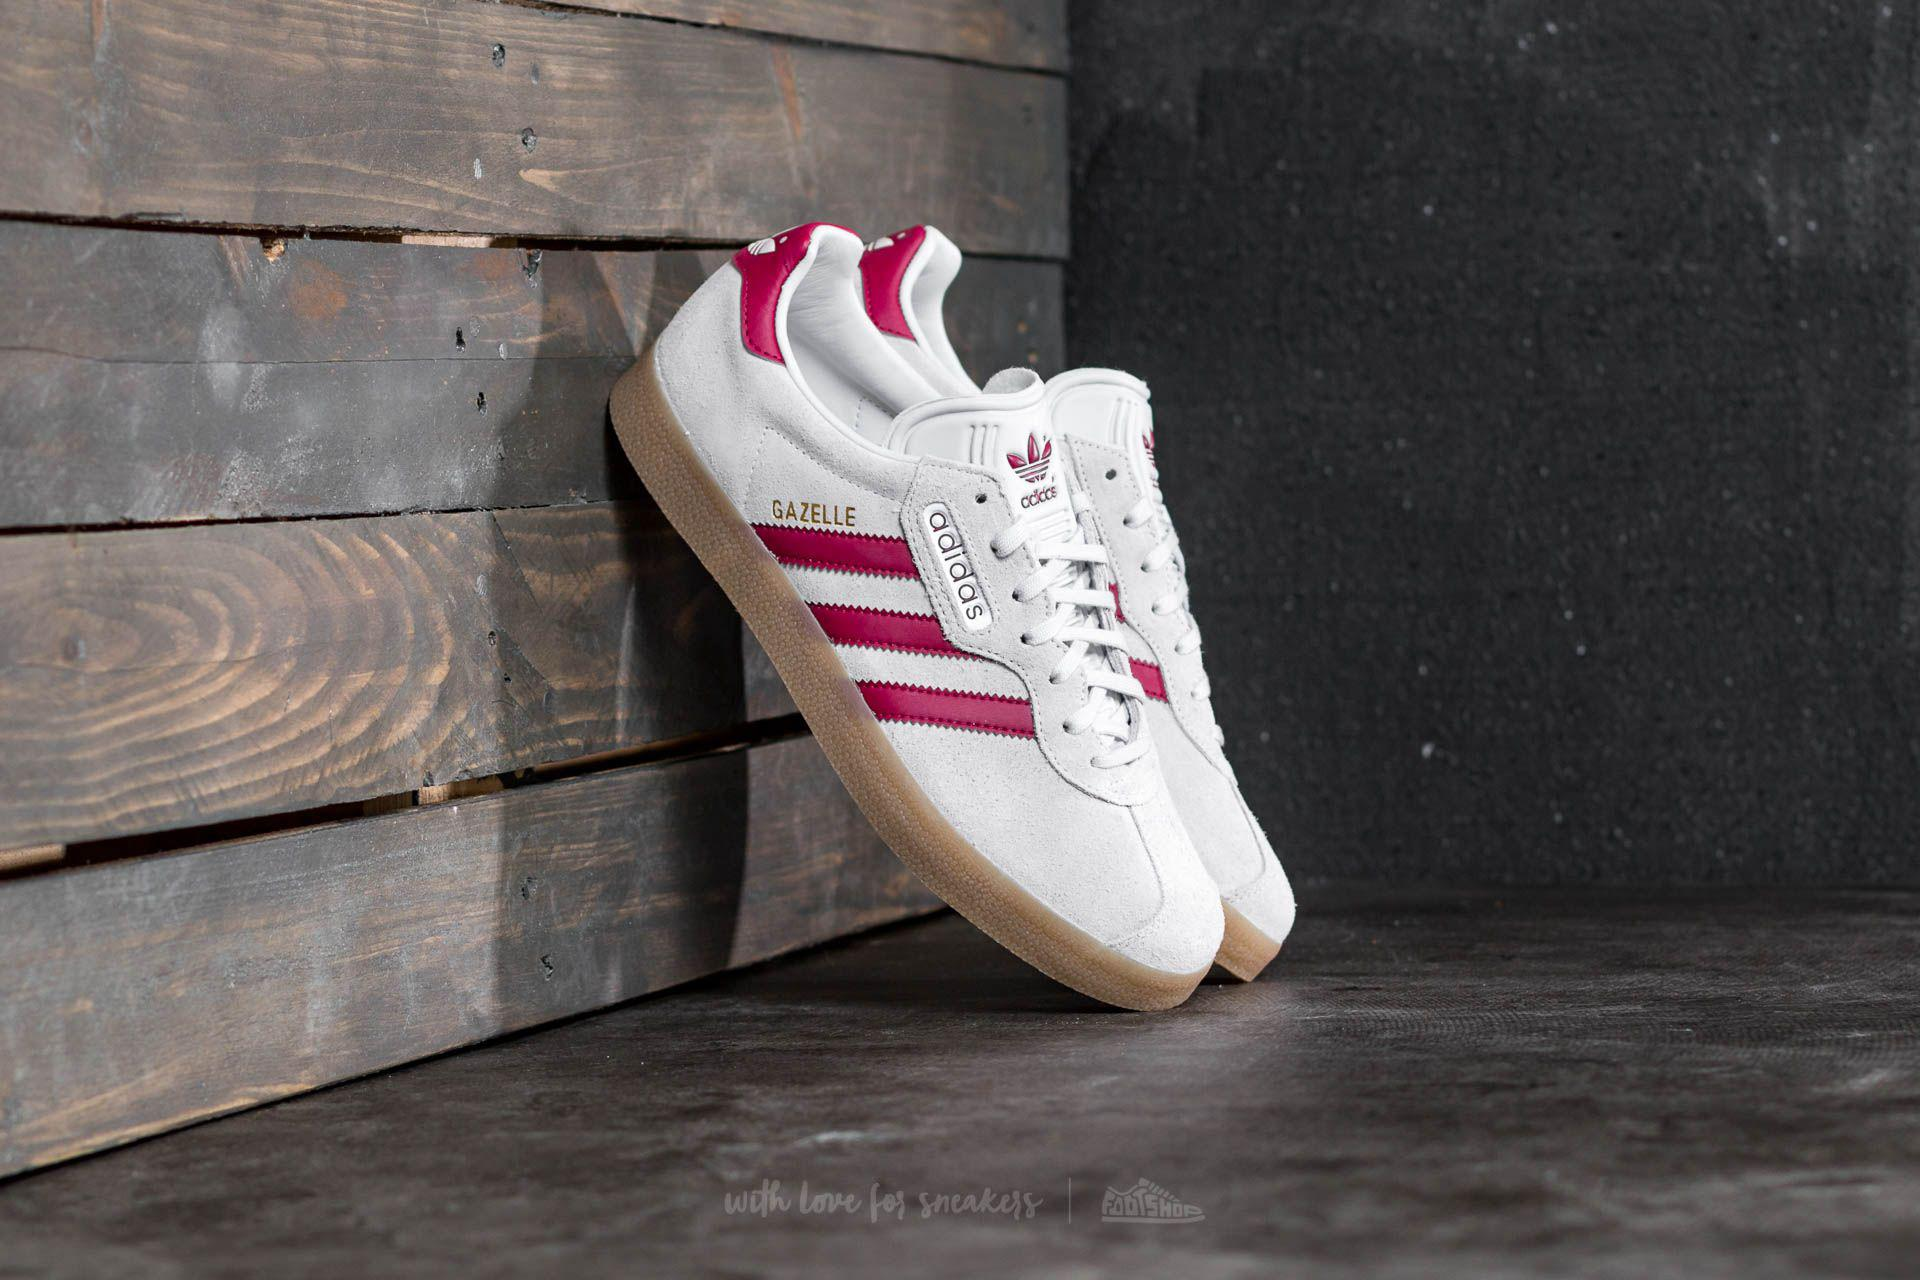 Adidas Gazelle Super St Major/ Ftw White/ Gold Metalic footshop Sportivo